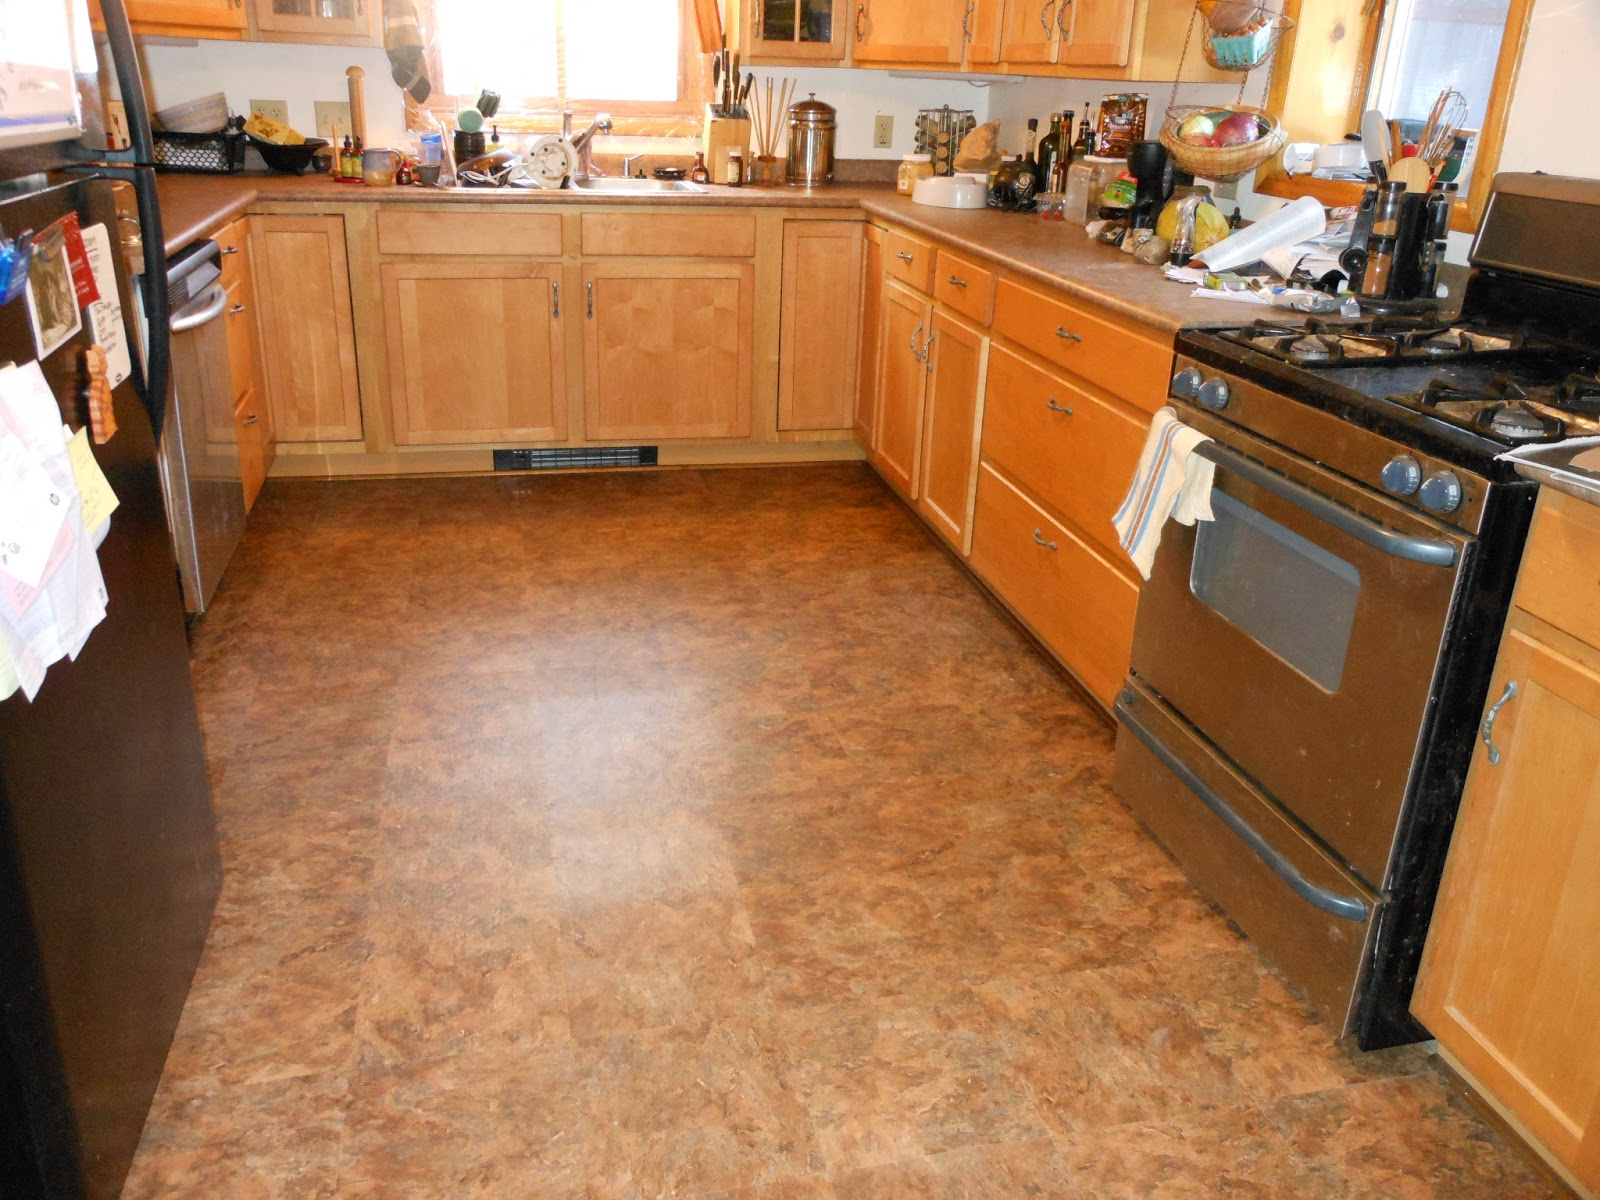 Tile Or Laminate Kitchen Floor